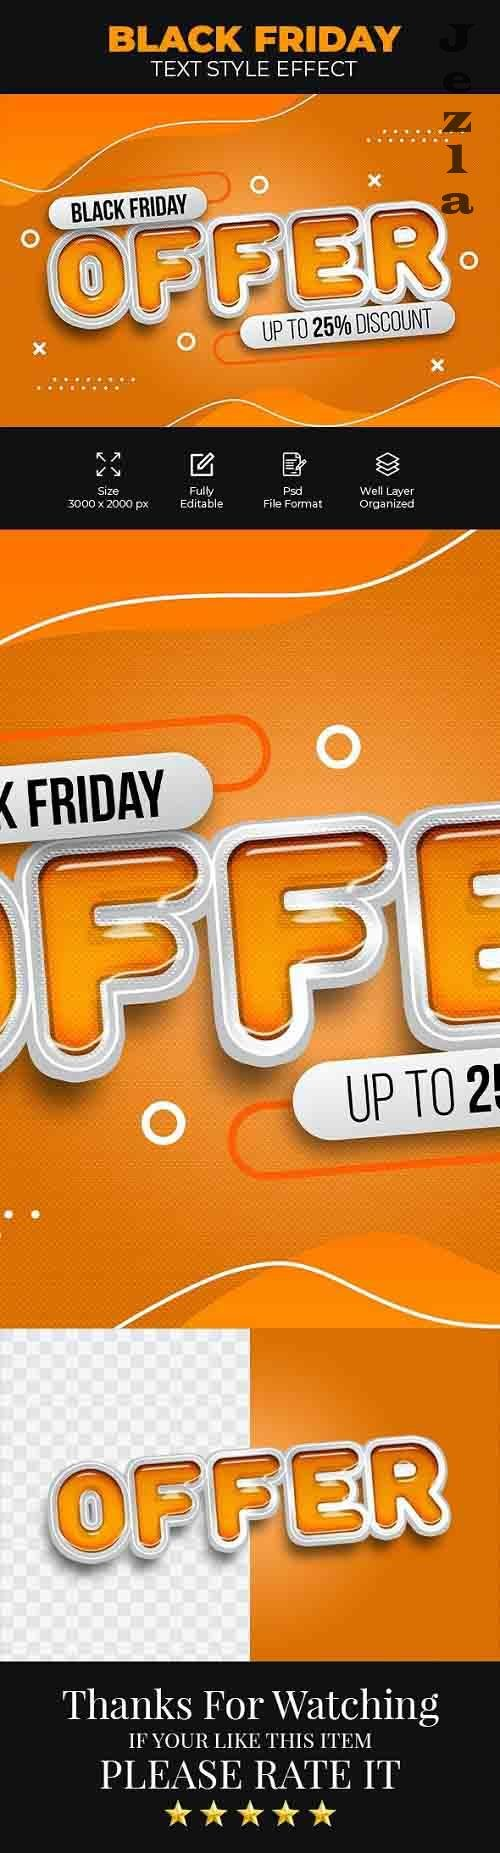 GraphicRiver - Black Friday Offer Psd Text Style Effect 28586993